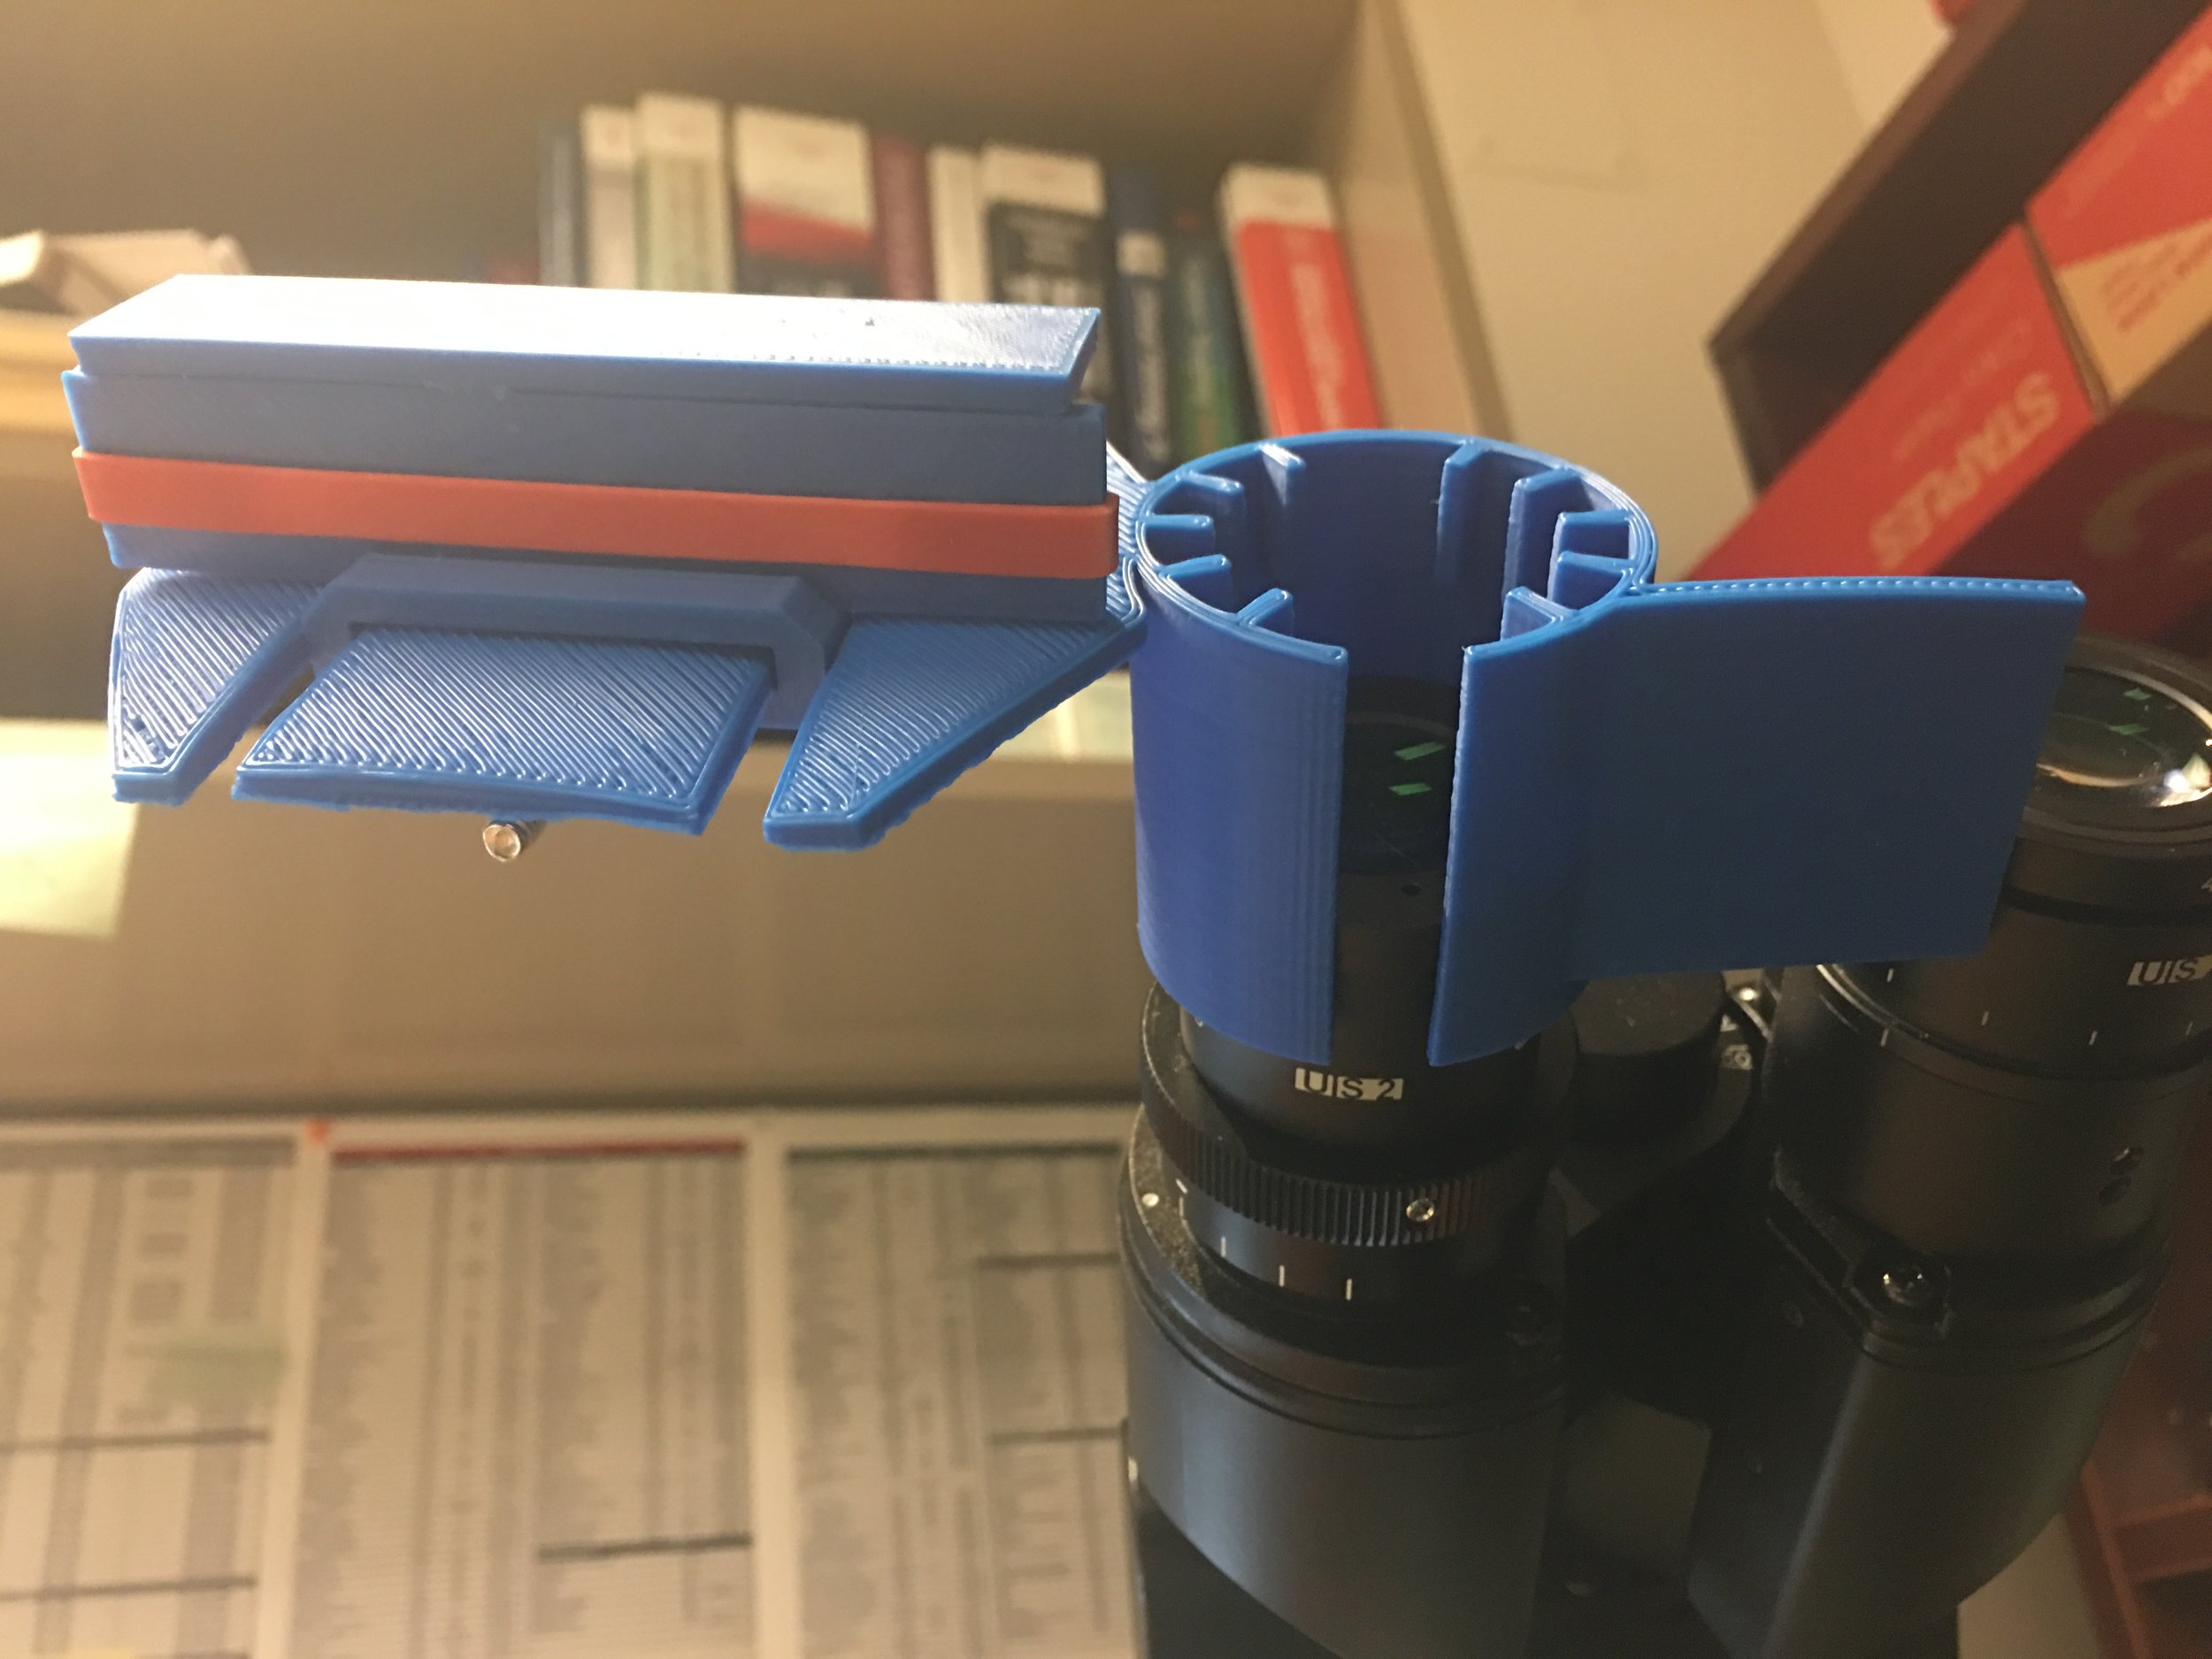 Place Mount on LEFT Eyepiece